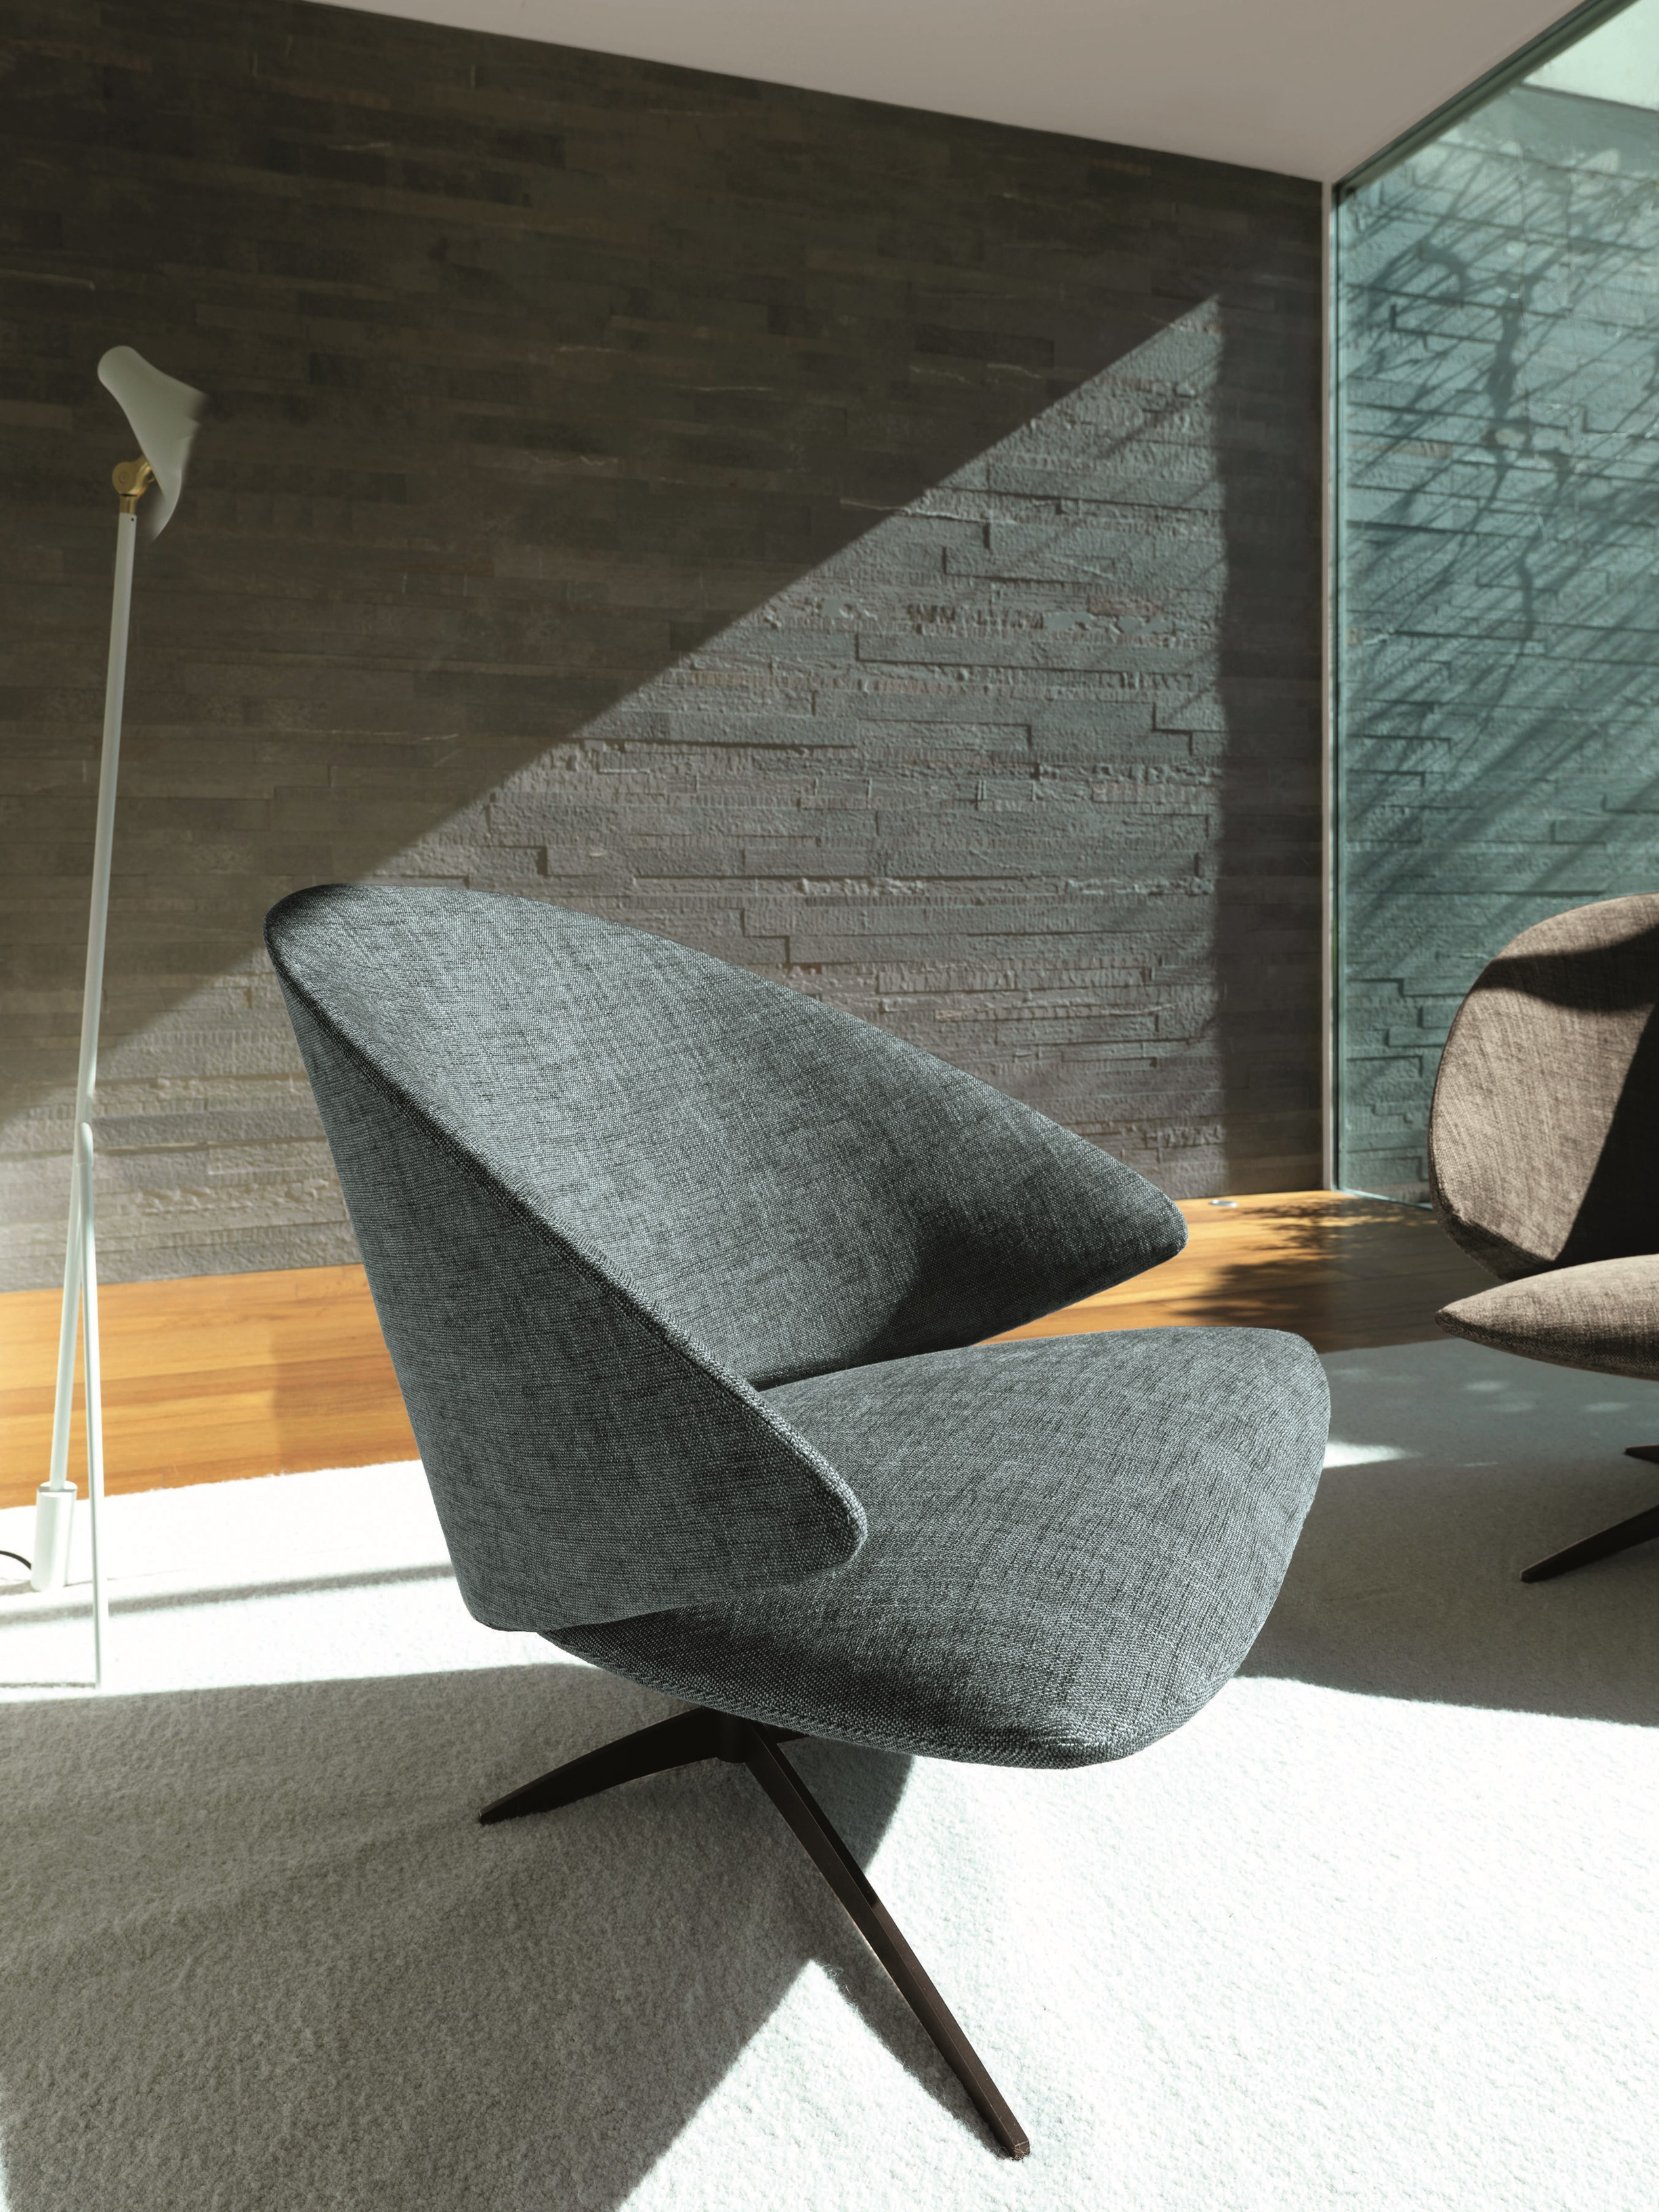 Fauteuildesignkosterlyonfauteuilcontemporainitaliendesiree - Fauteuils contemporains italiens